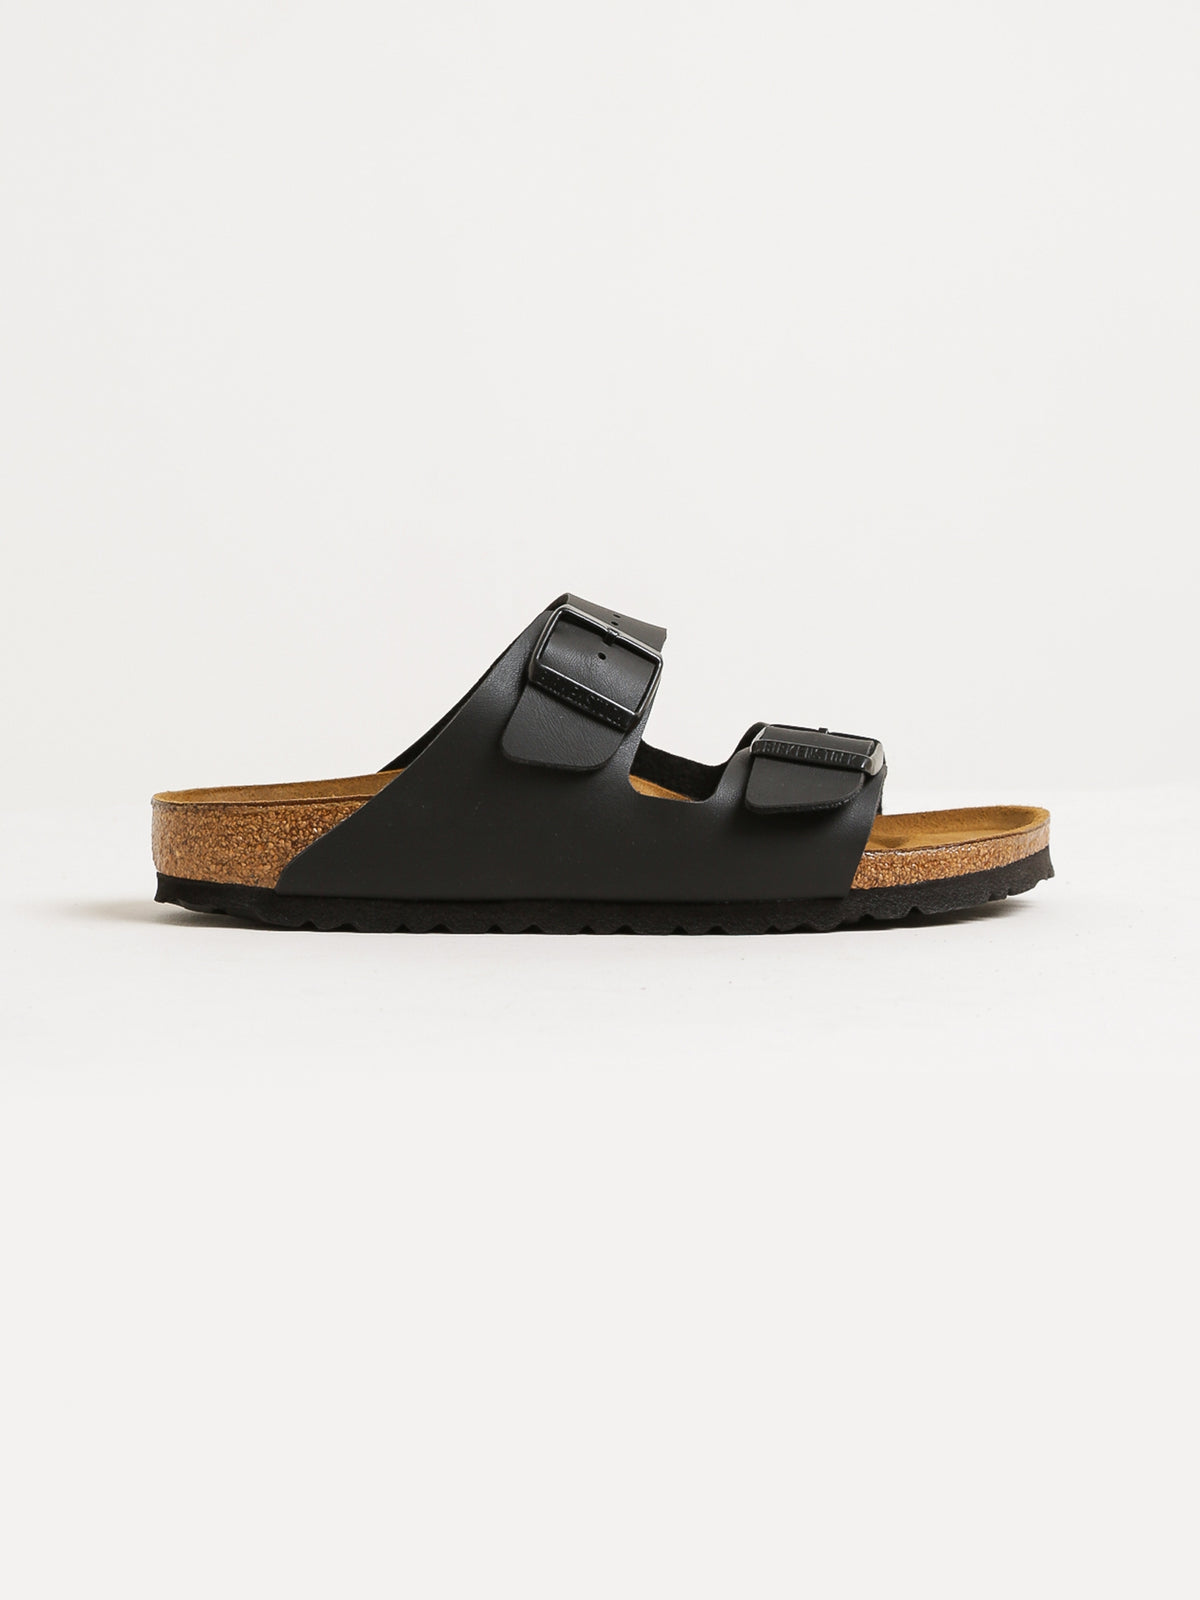 Unisex Arizona Two-Strap Narrow Width Sandals in Black Birko-Flor